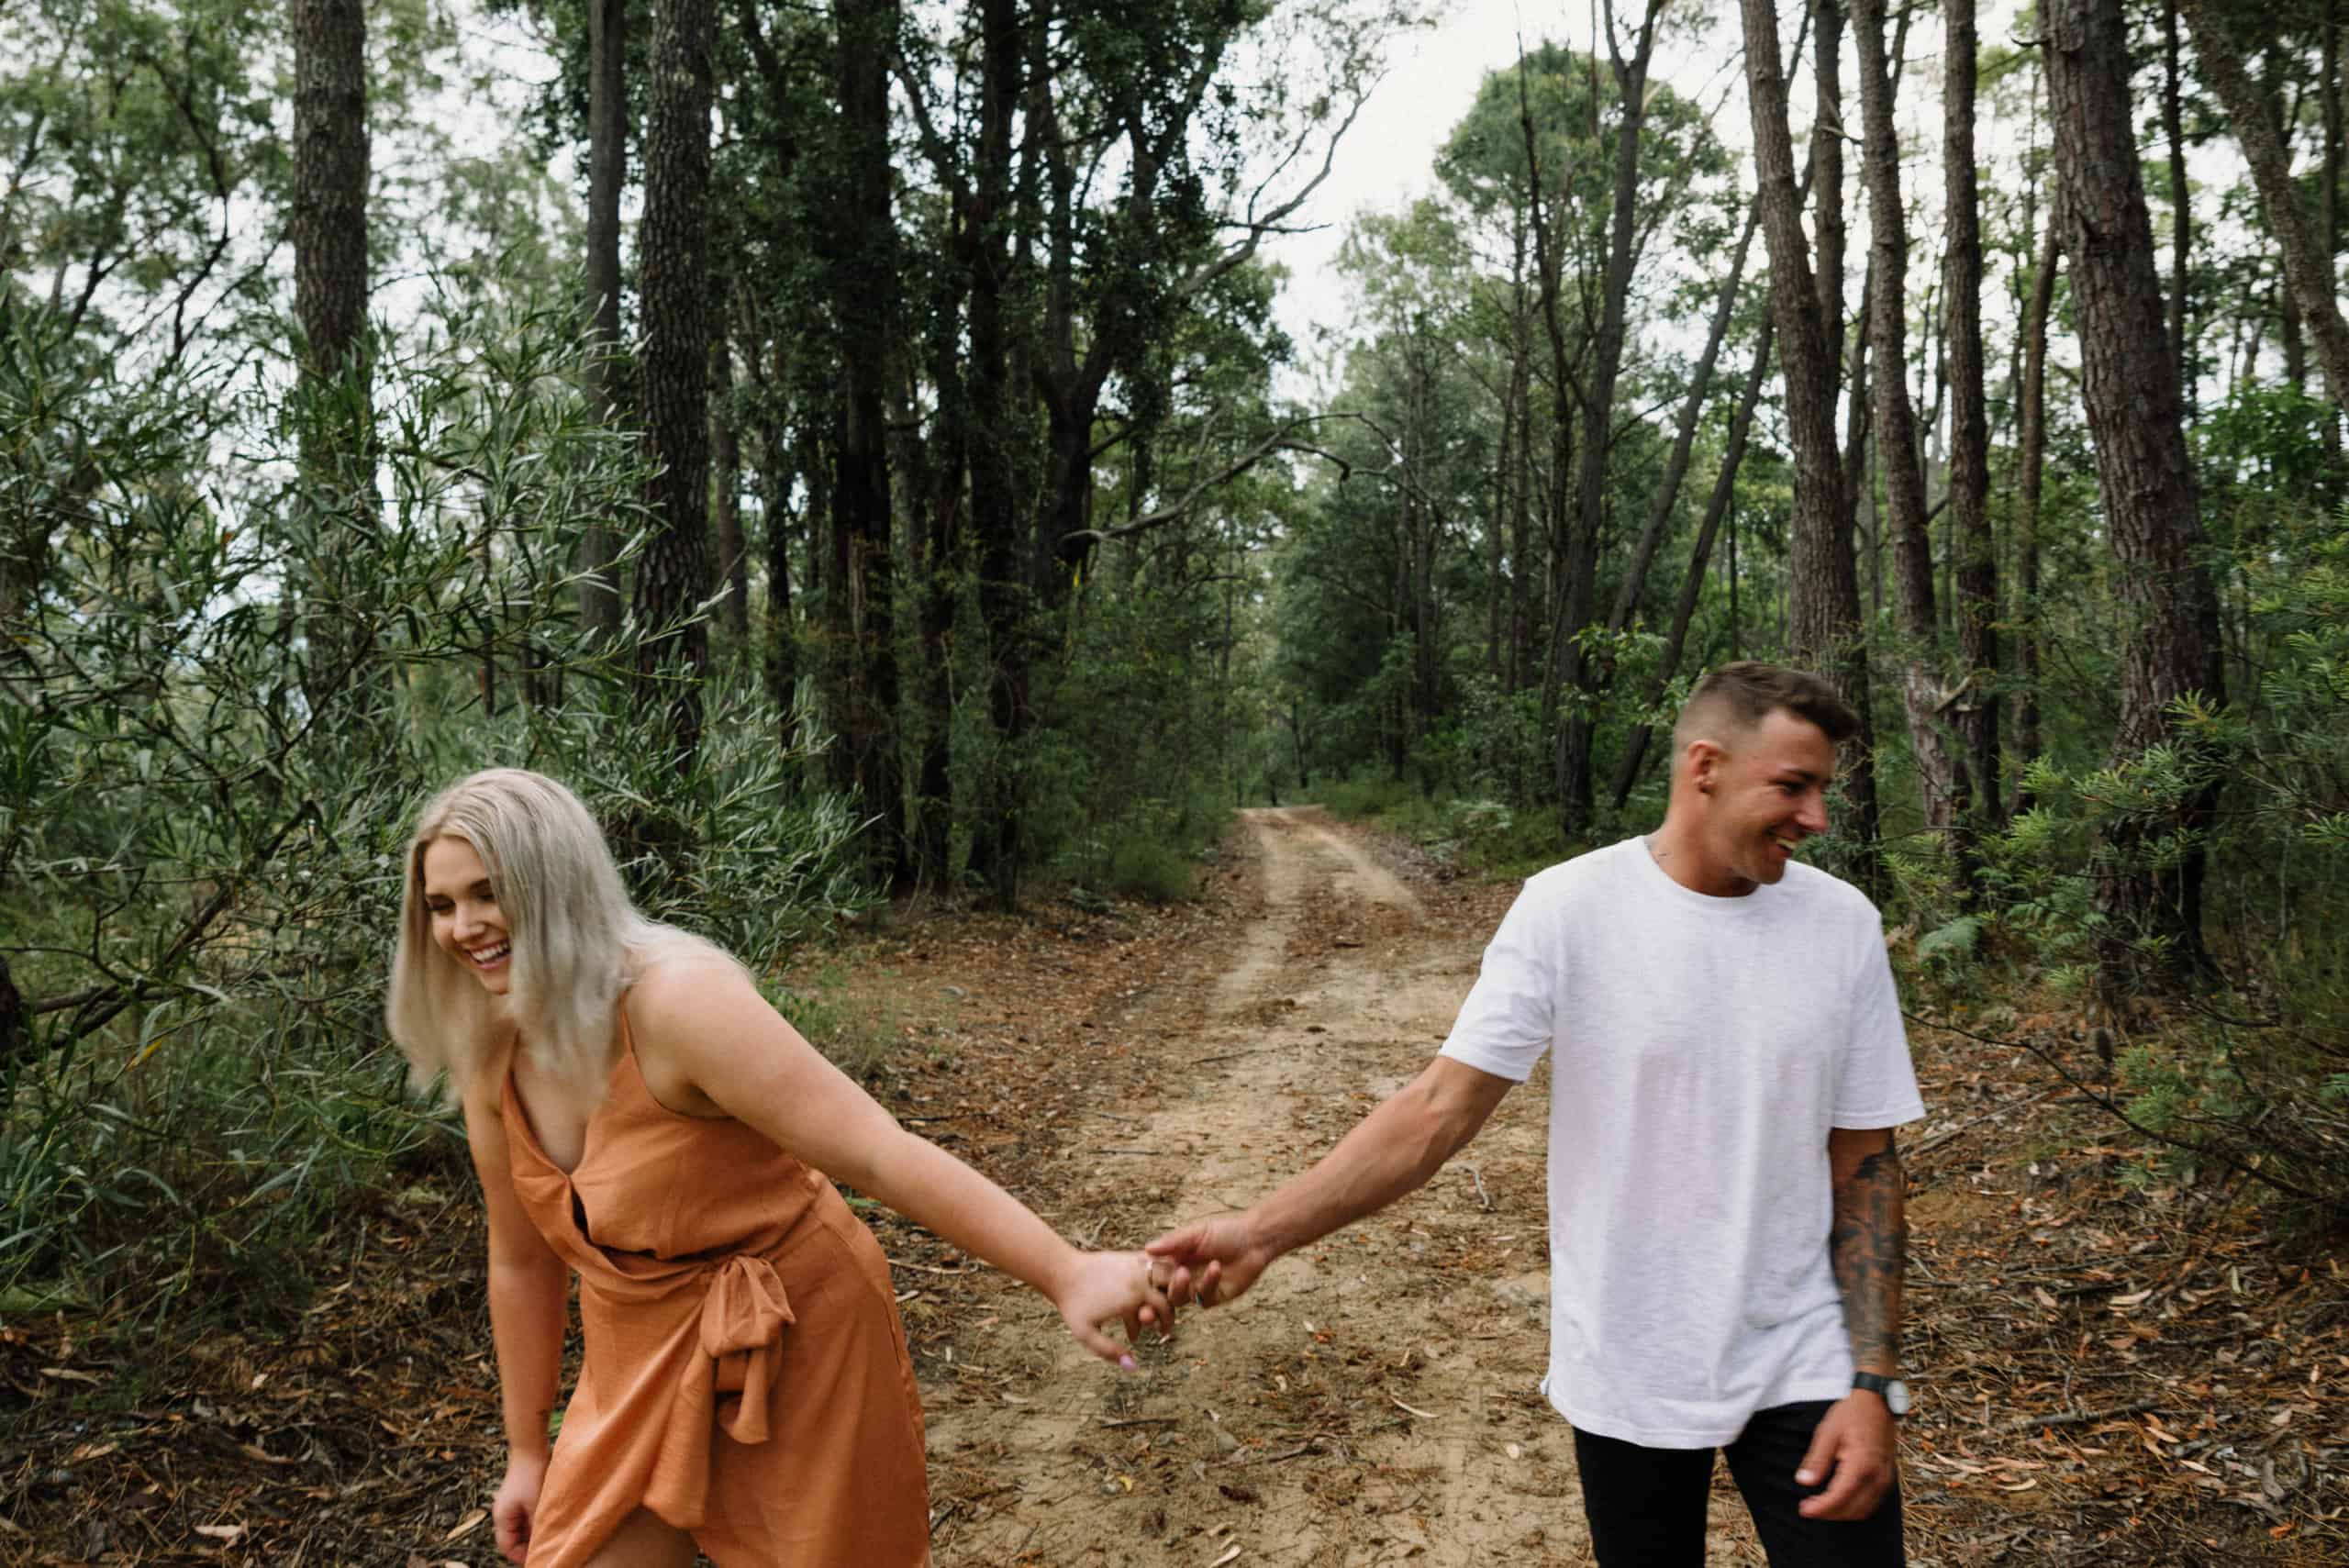 top engagement photoshoot location bride and groom standing on dirt road, laughing and holding hands